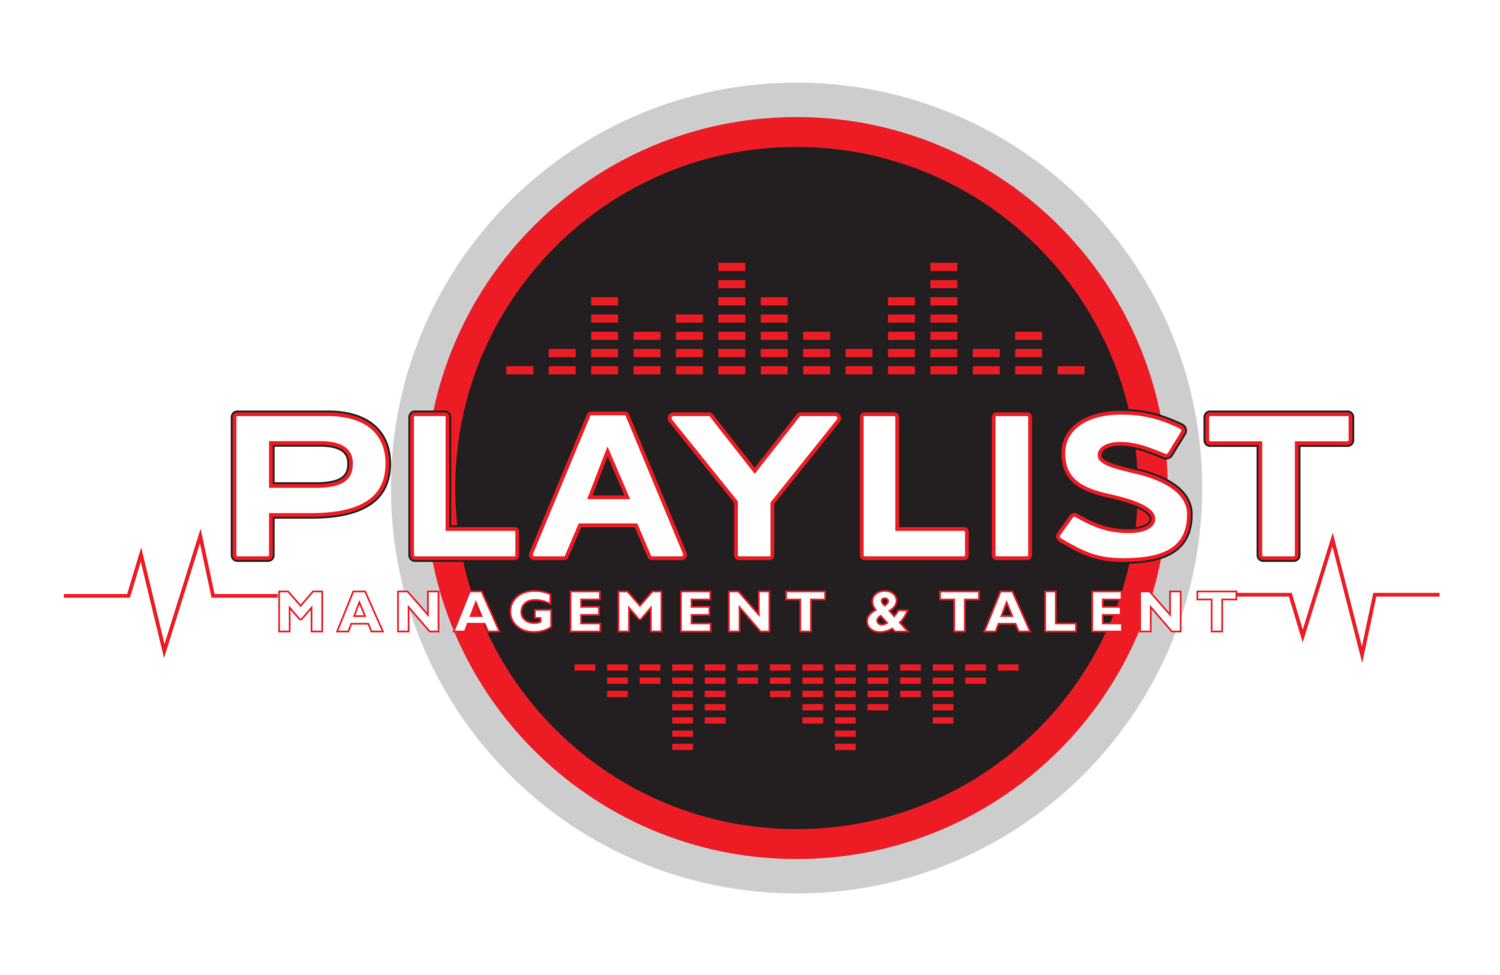 PlayList Management & Talent